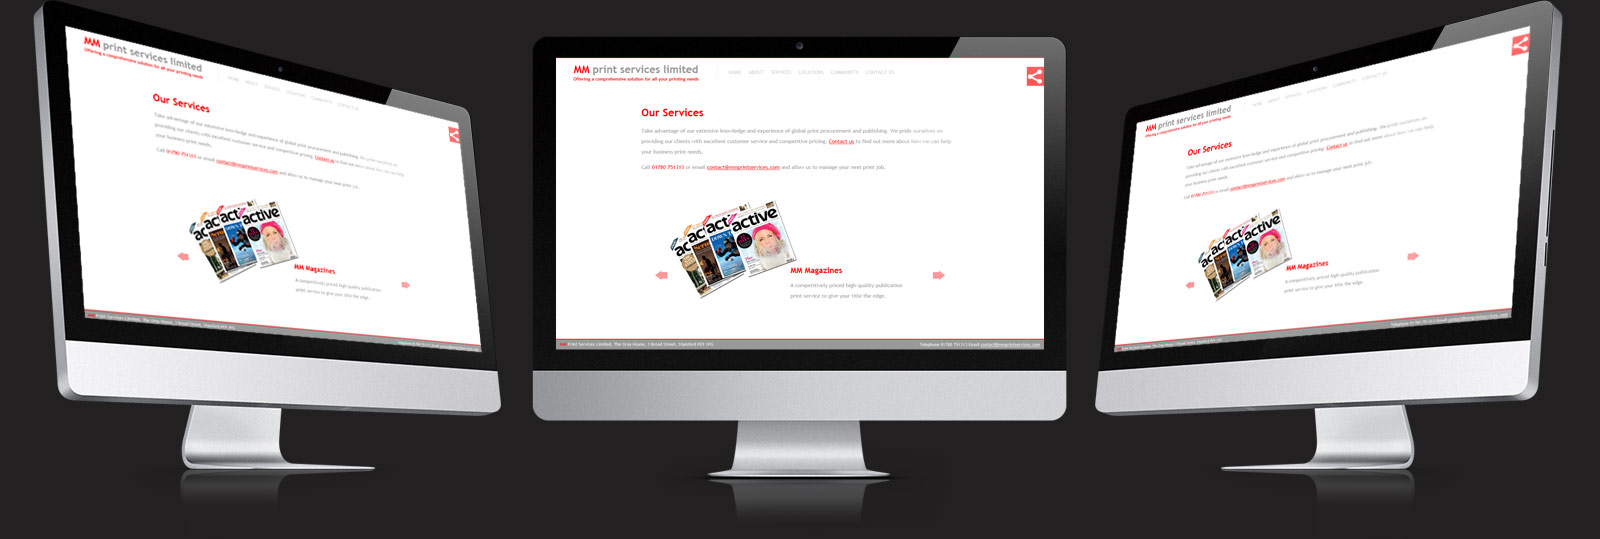 Stamford Web Design - MM Print Services